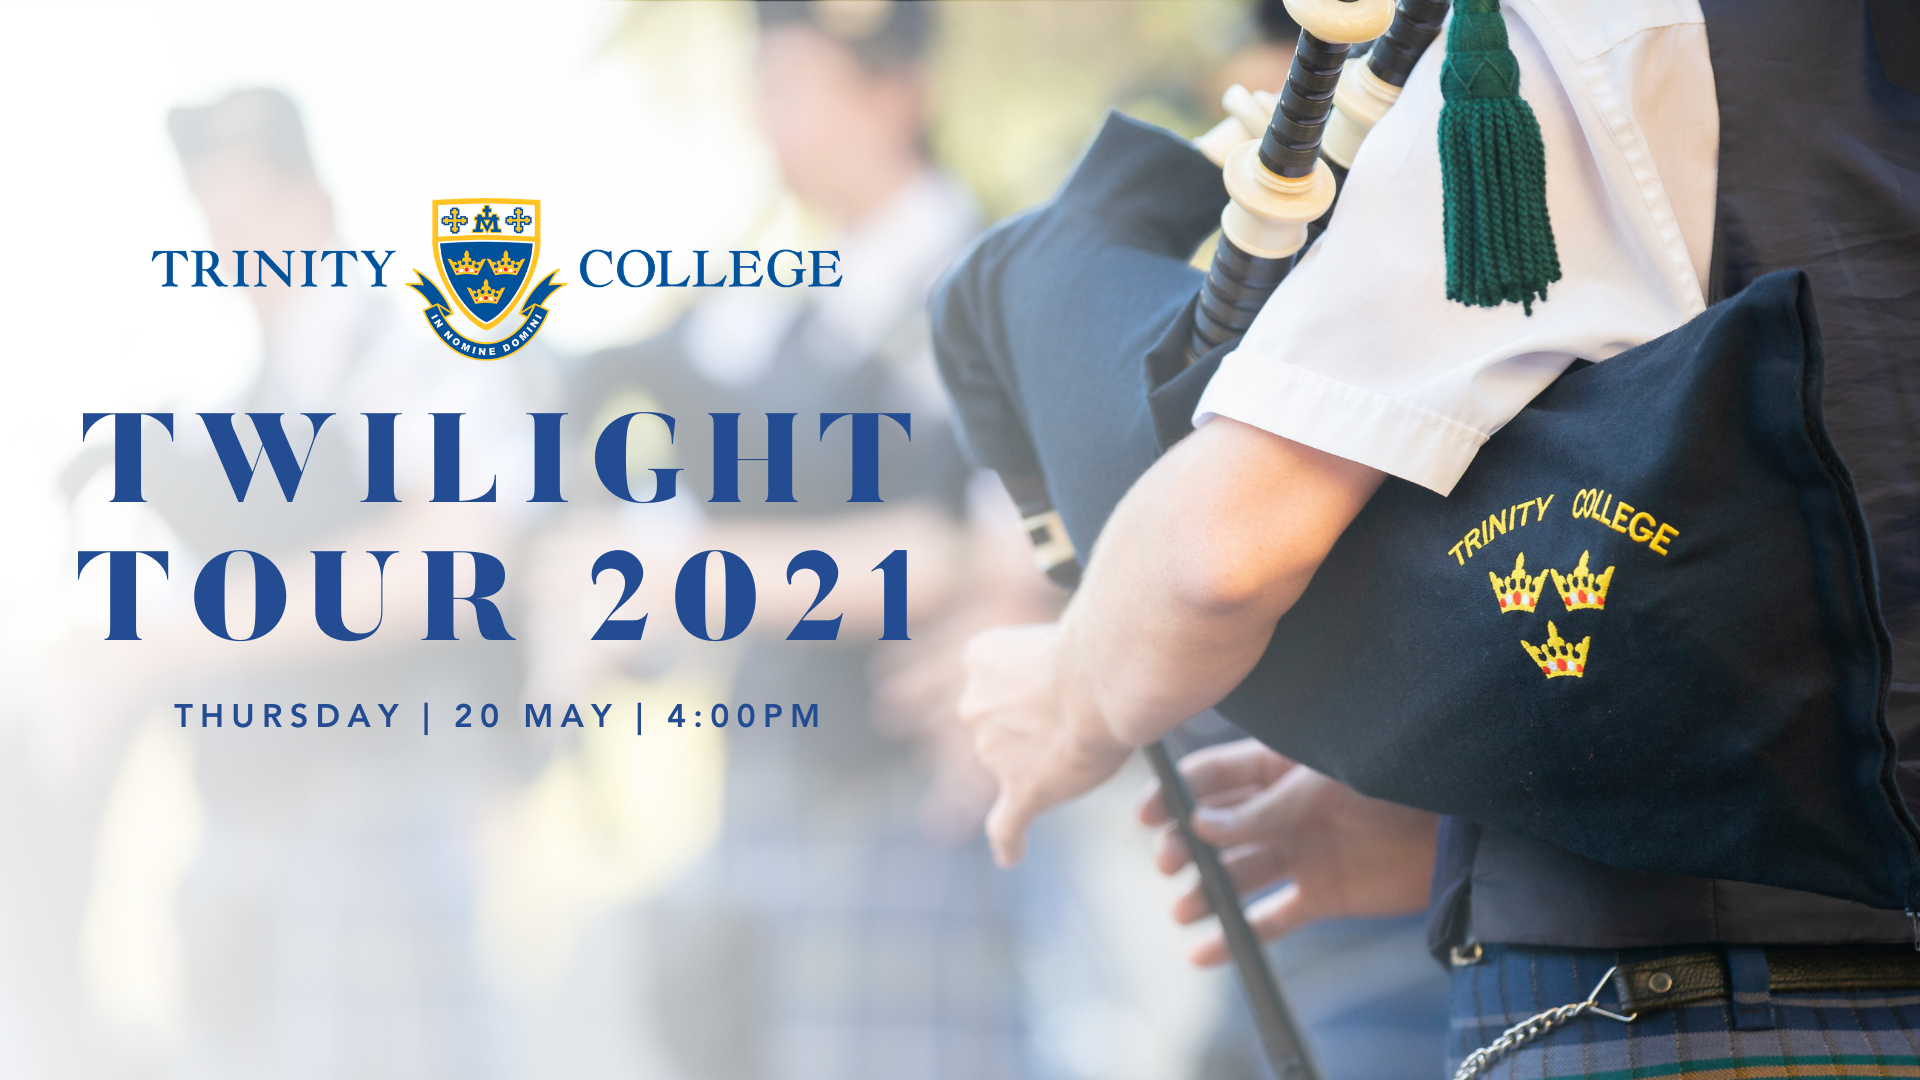 College Twilight Tour 2021